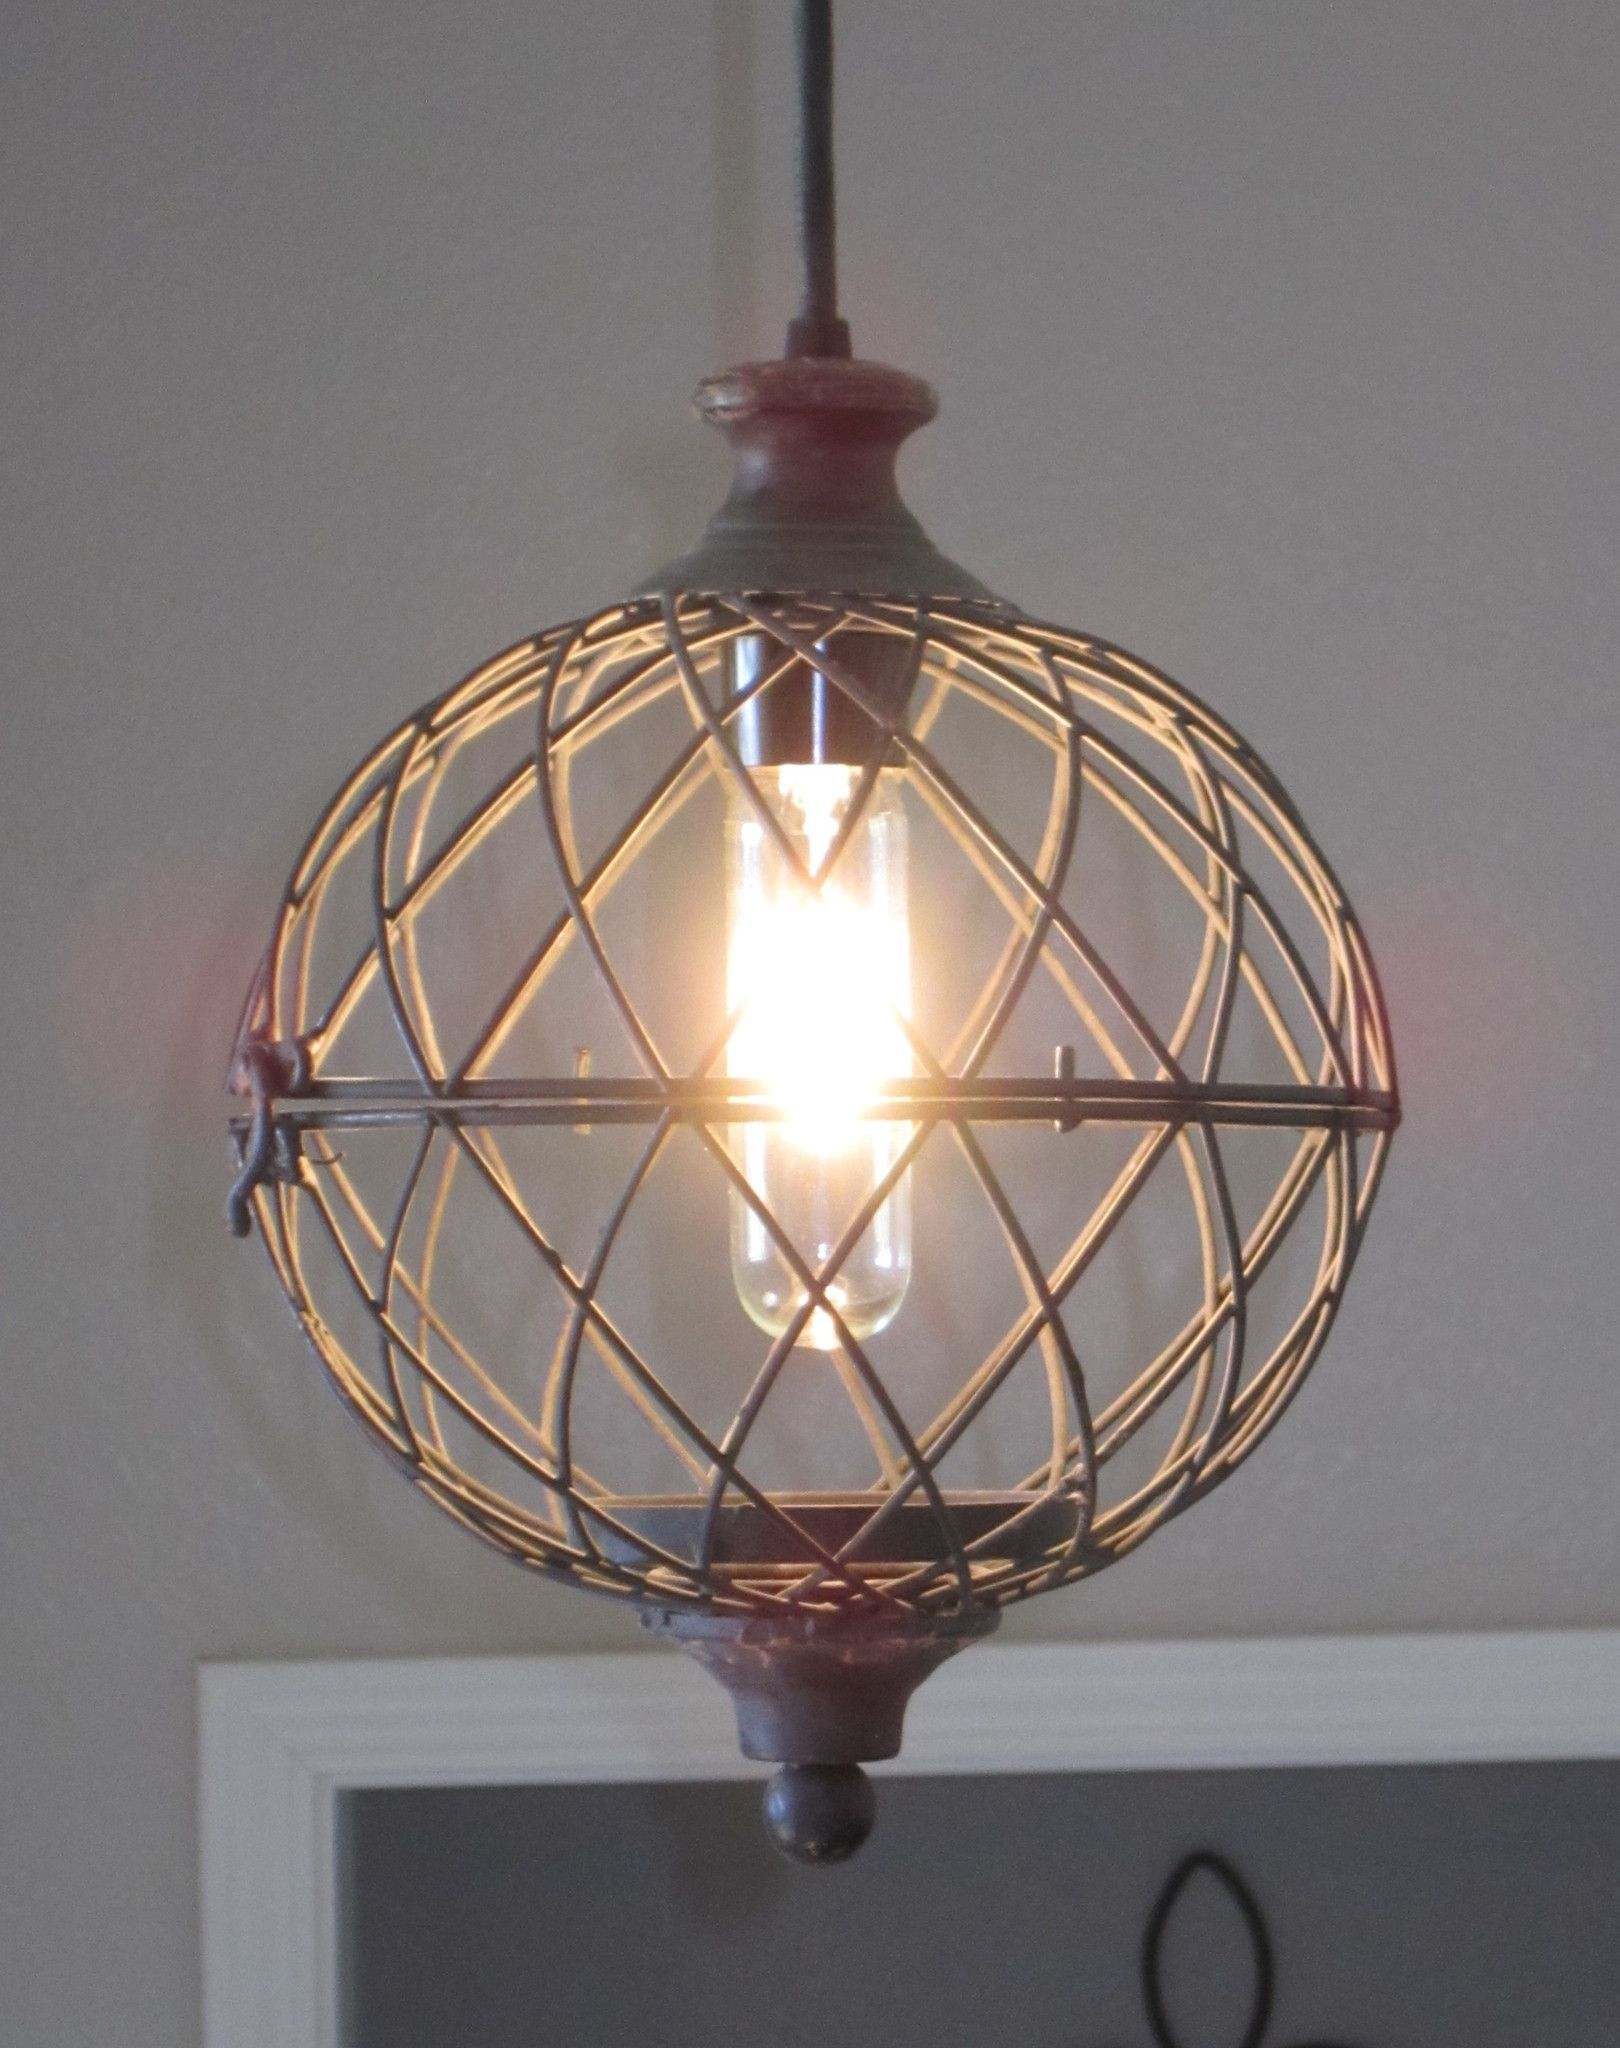 Rustic Metal Globe Pendant Light distressed rustic lighting